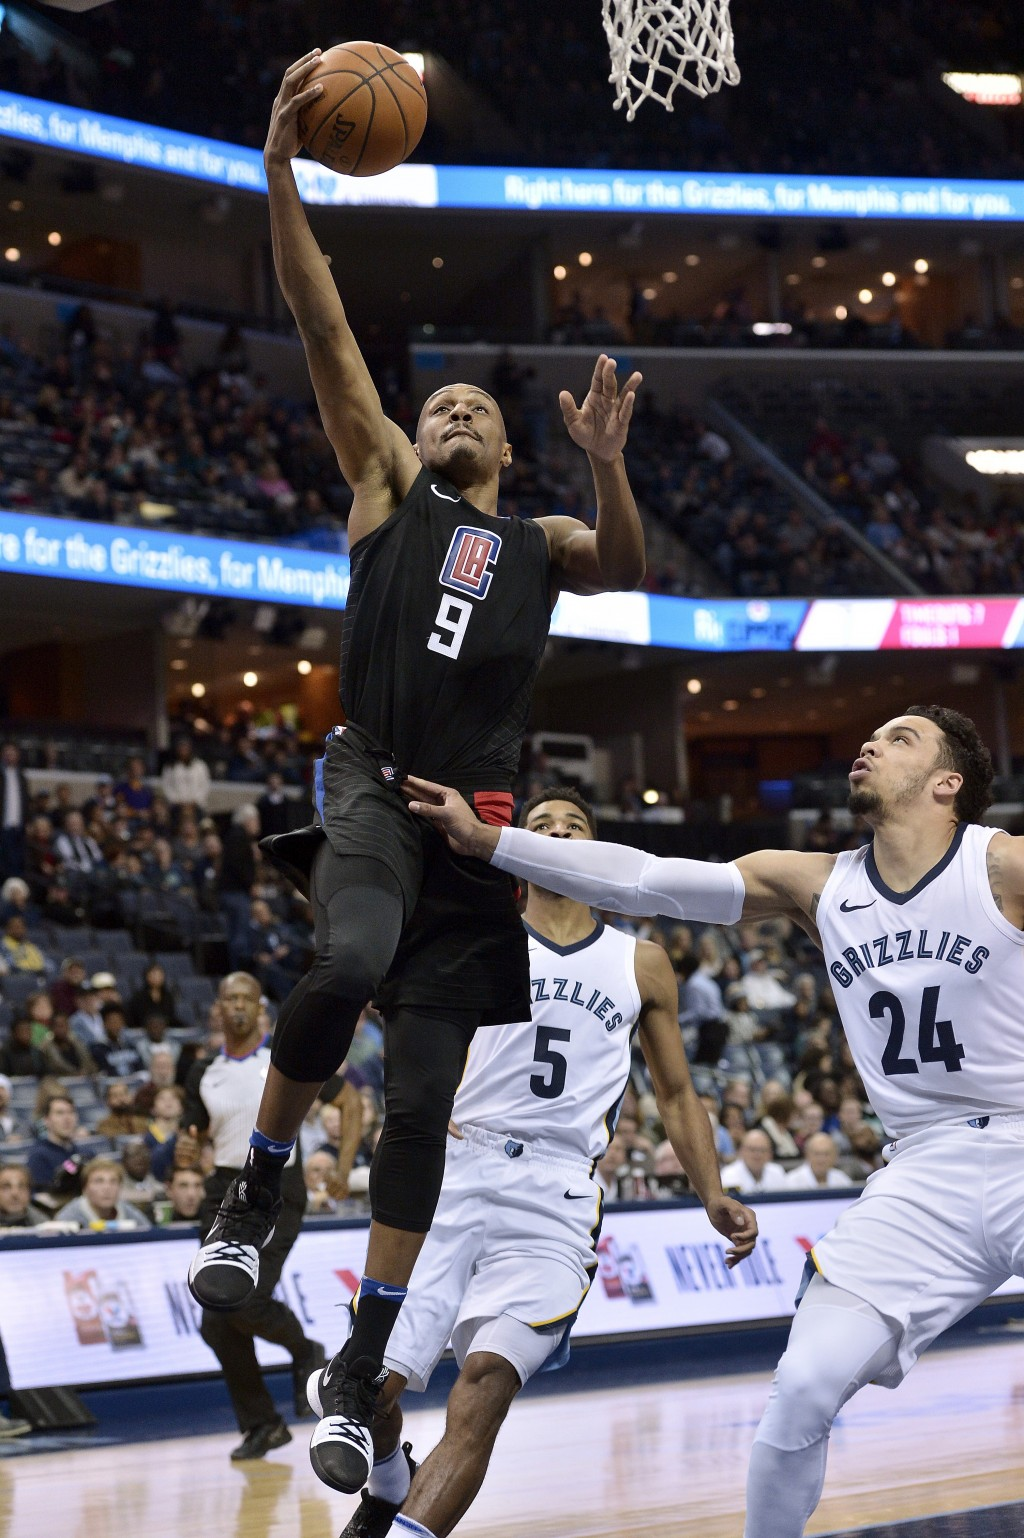 Los Angeles Clippers guard C.J. Williams (9)shoots against Memphis Grizzlies forward Dillon Brooks (24) in the first half of an NBA basketball game Sa...